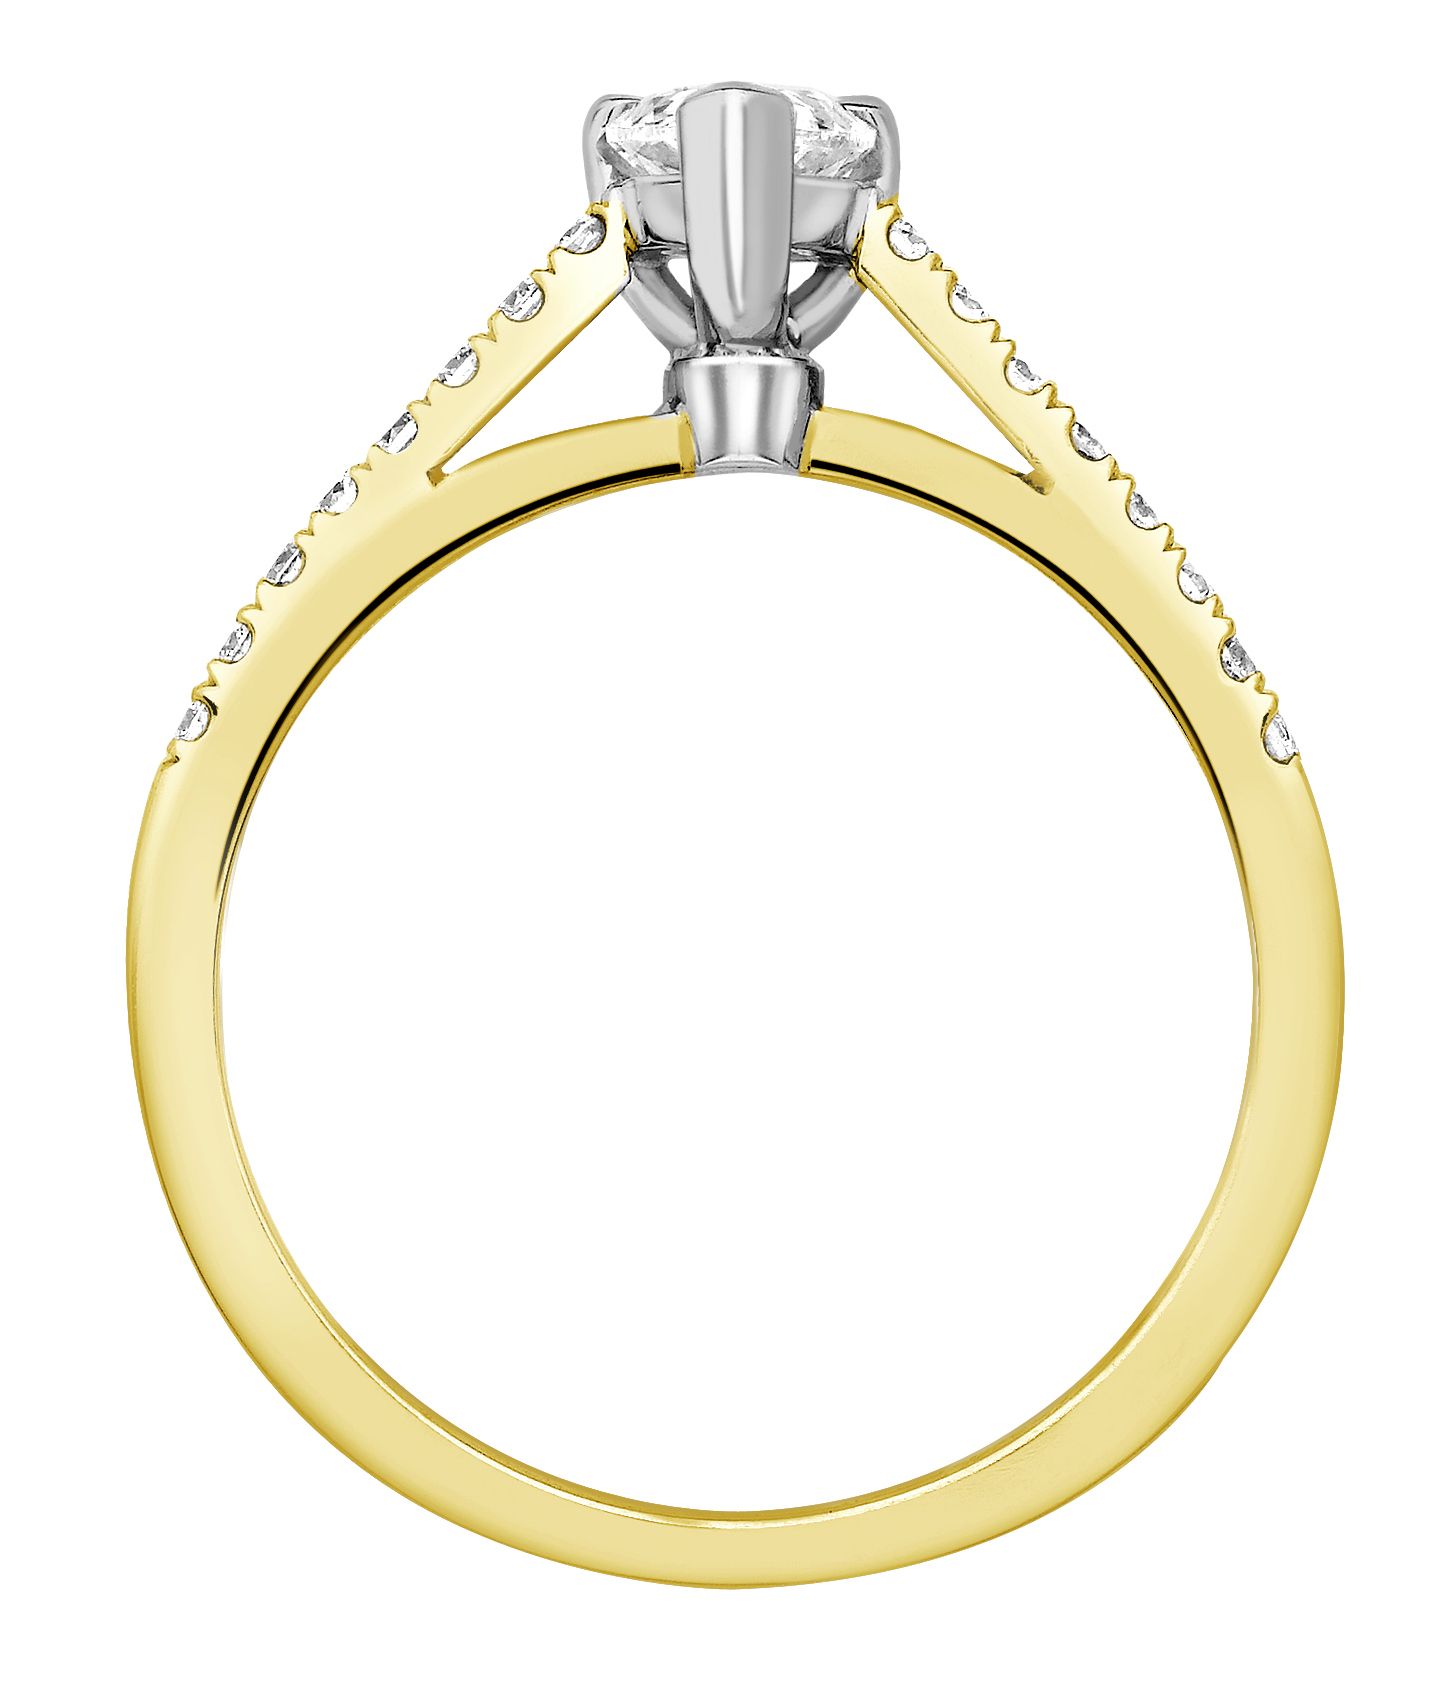 Pear Shape 3 Claw Yellow Gold Diamond Engagement Ring CRC698YG Image 2